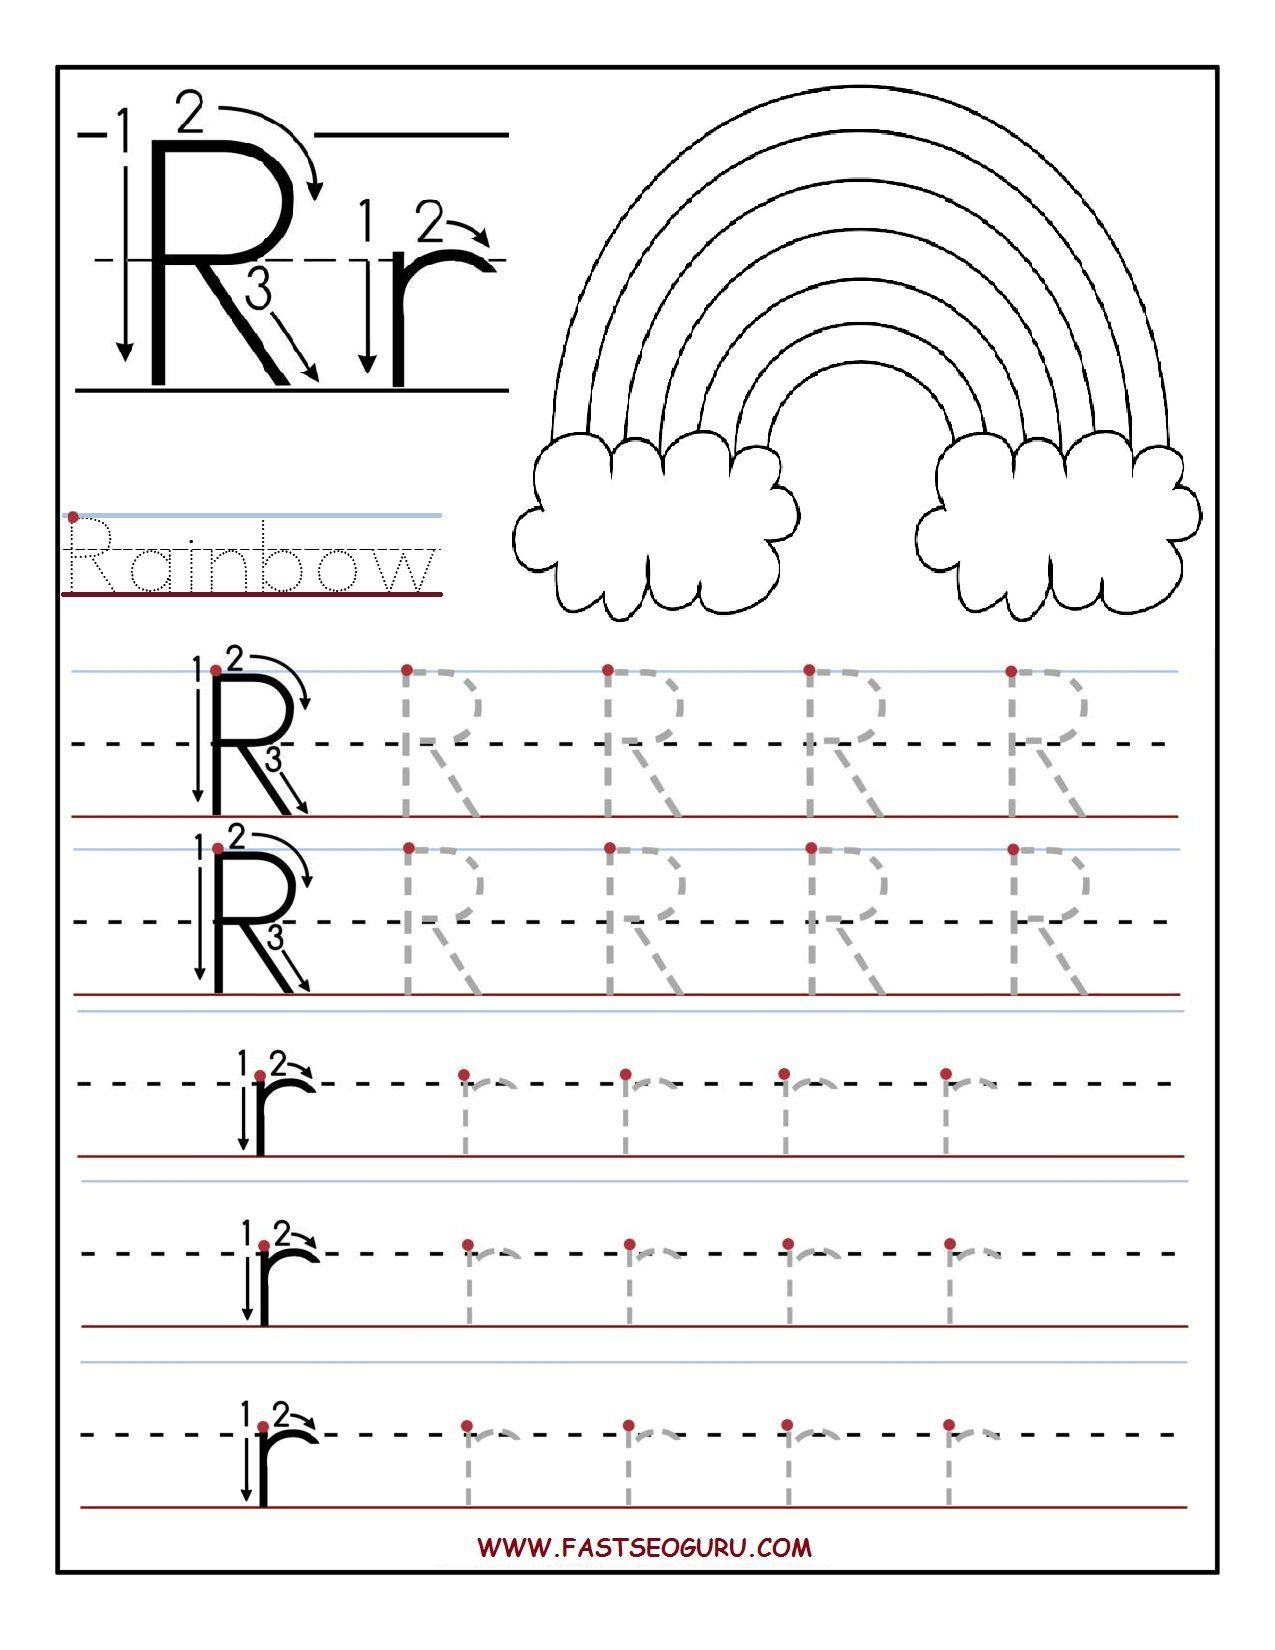 Letter R Coloring Pages For Preschool Coloring Pages Coloring Pages To Print Letter R